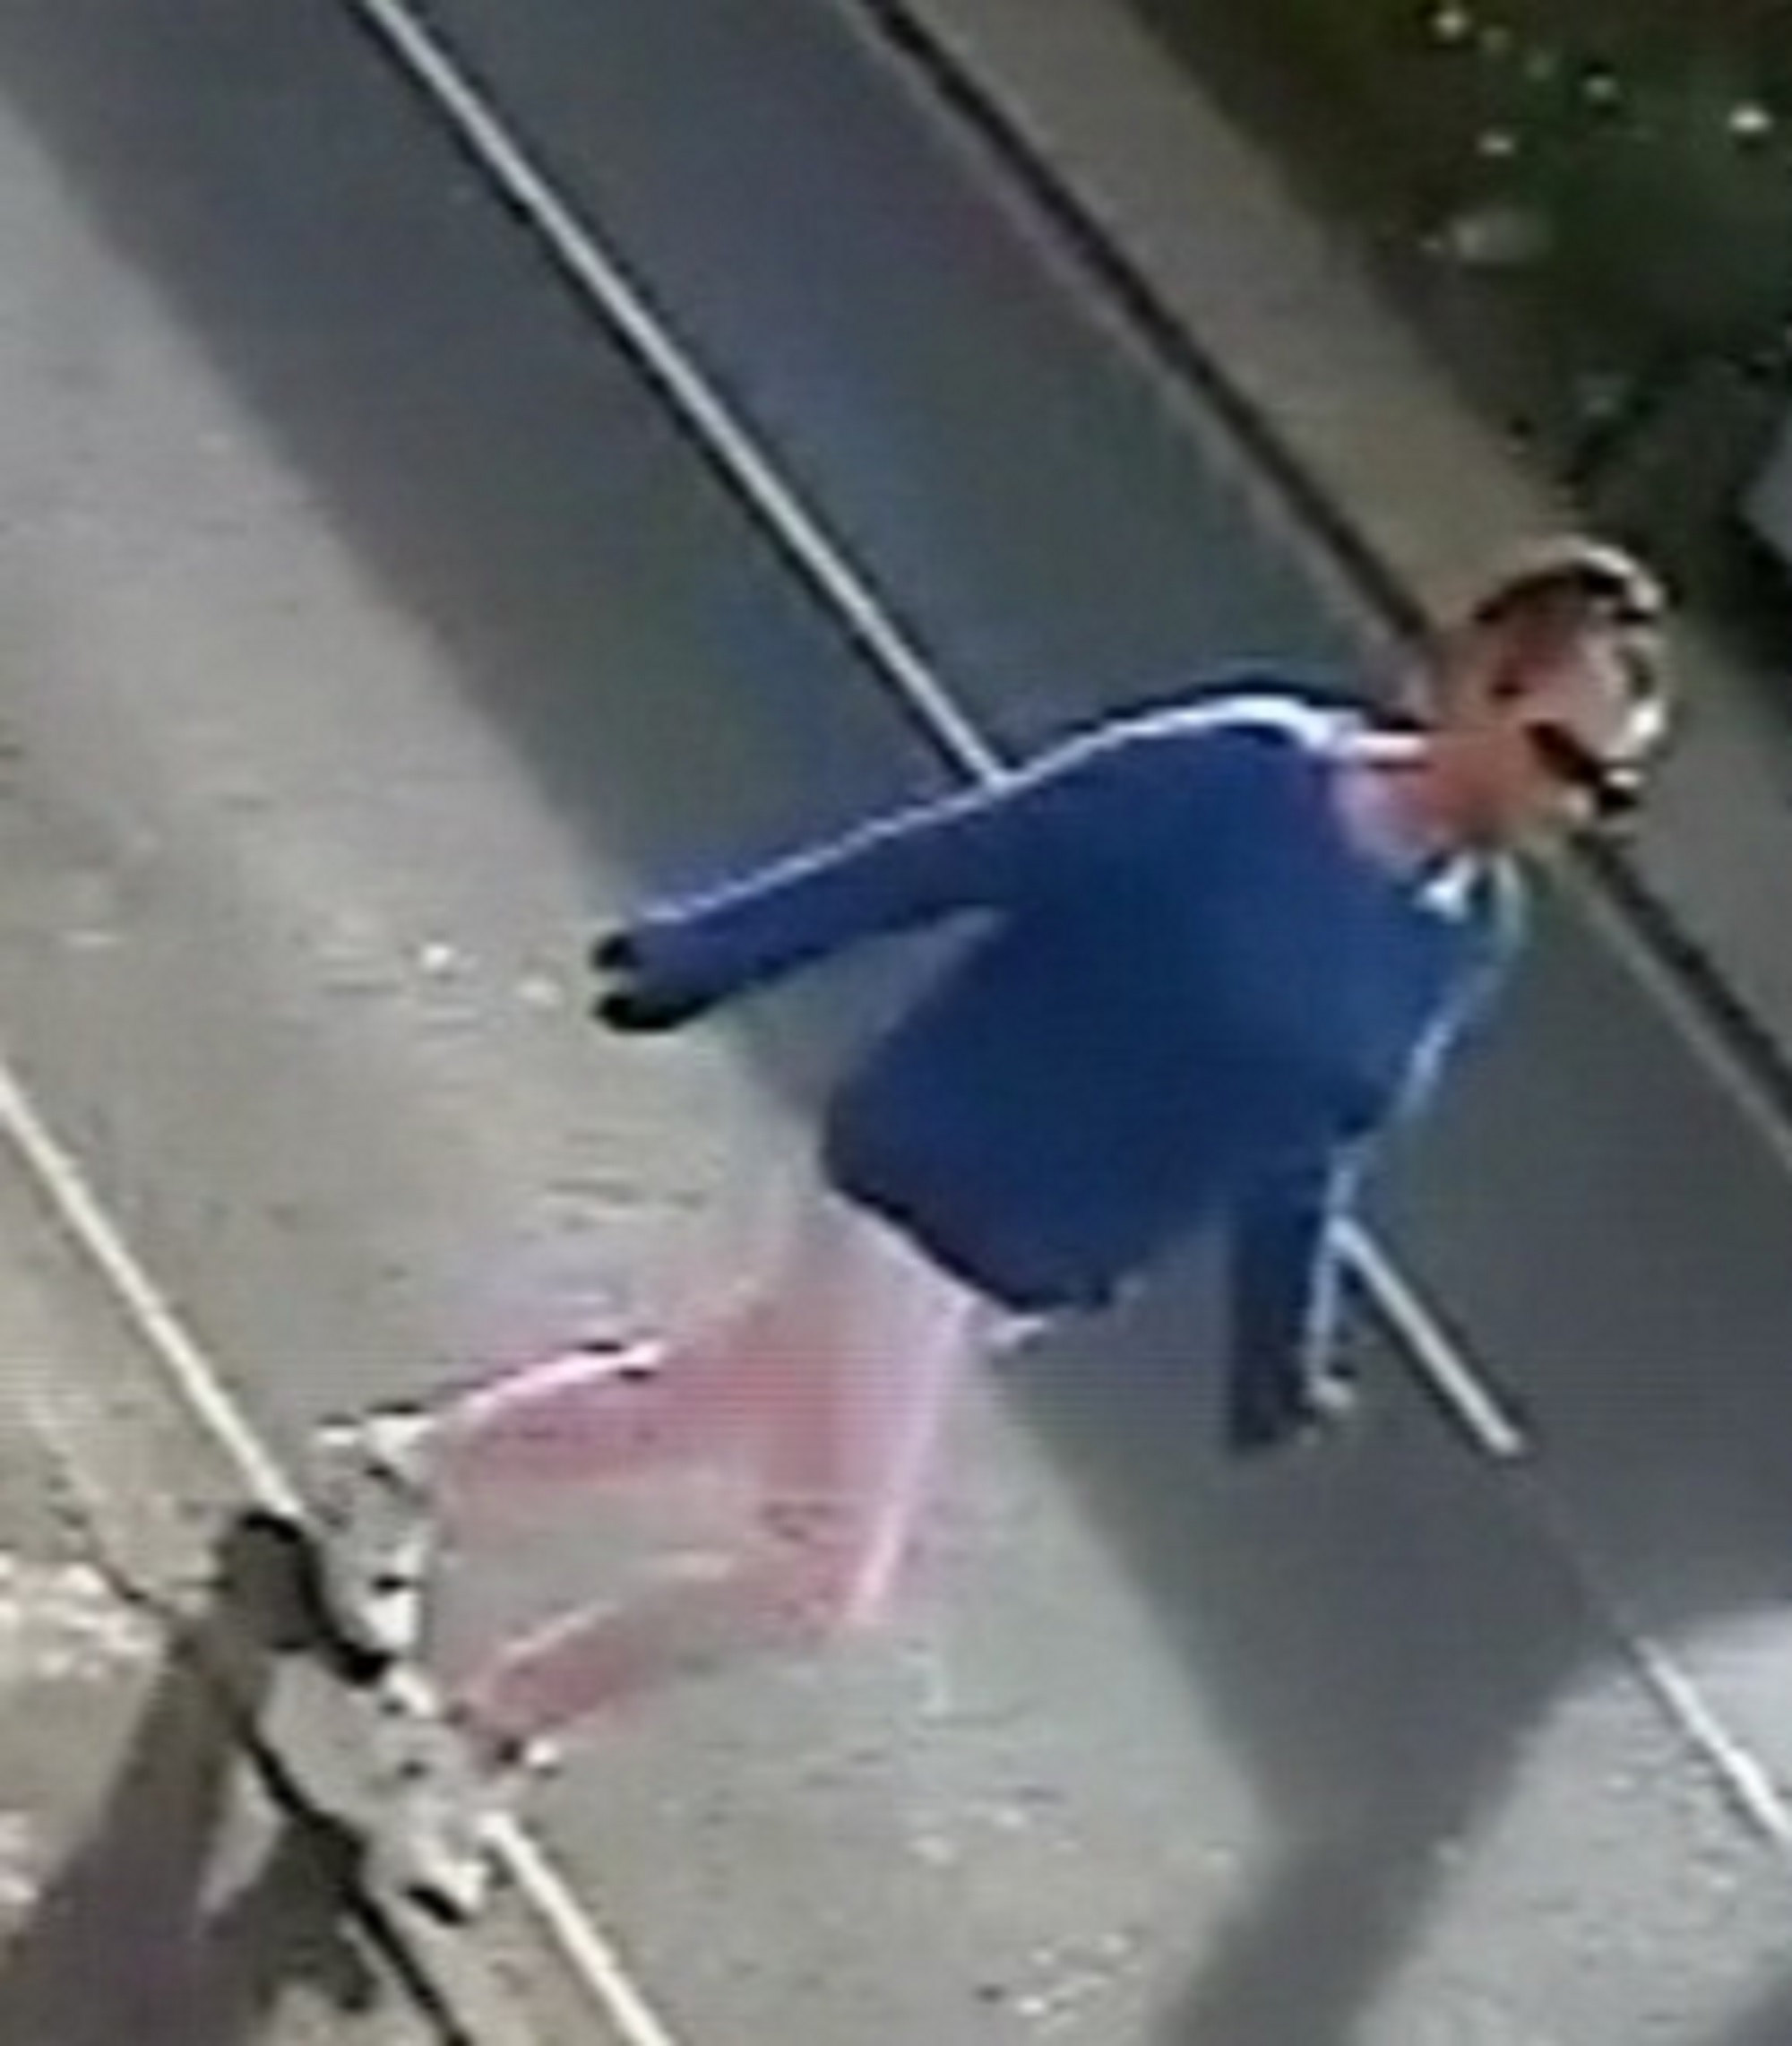 Police have released this CCTV image of a woman captured near to the victim's home. Anyone who knows this woman should get in touch with police.